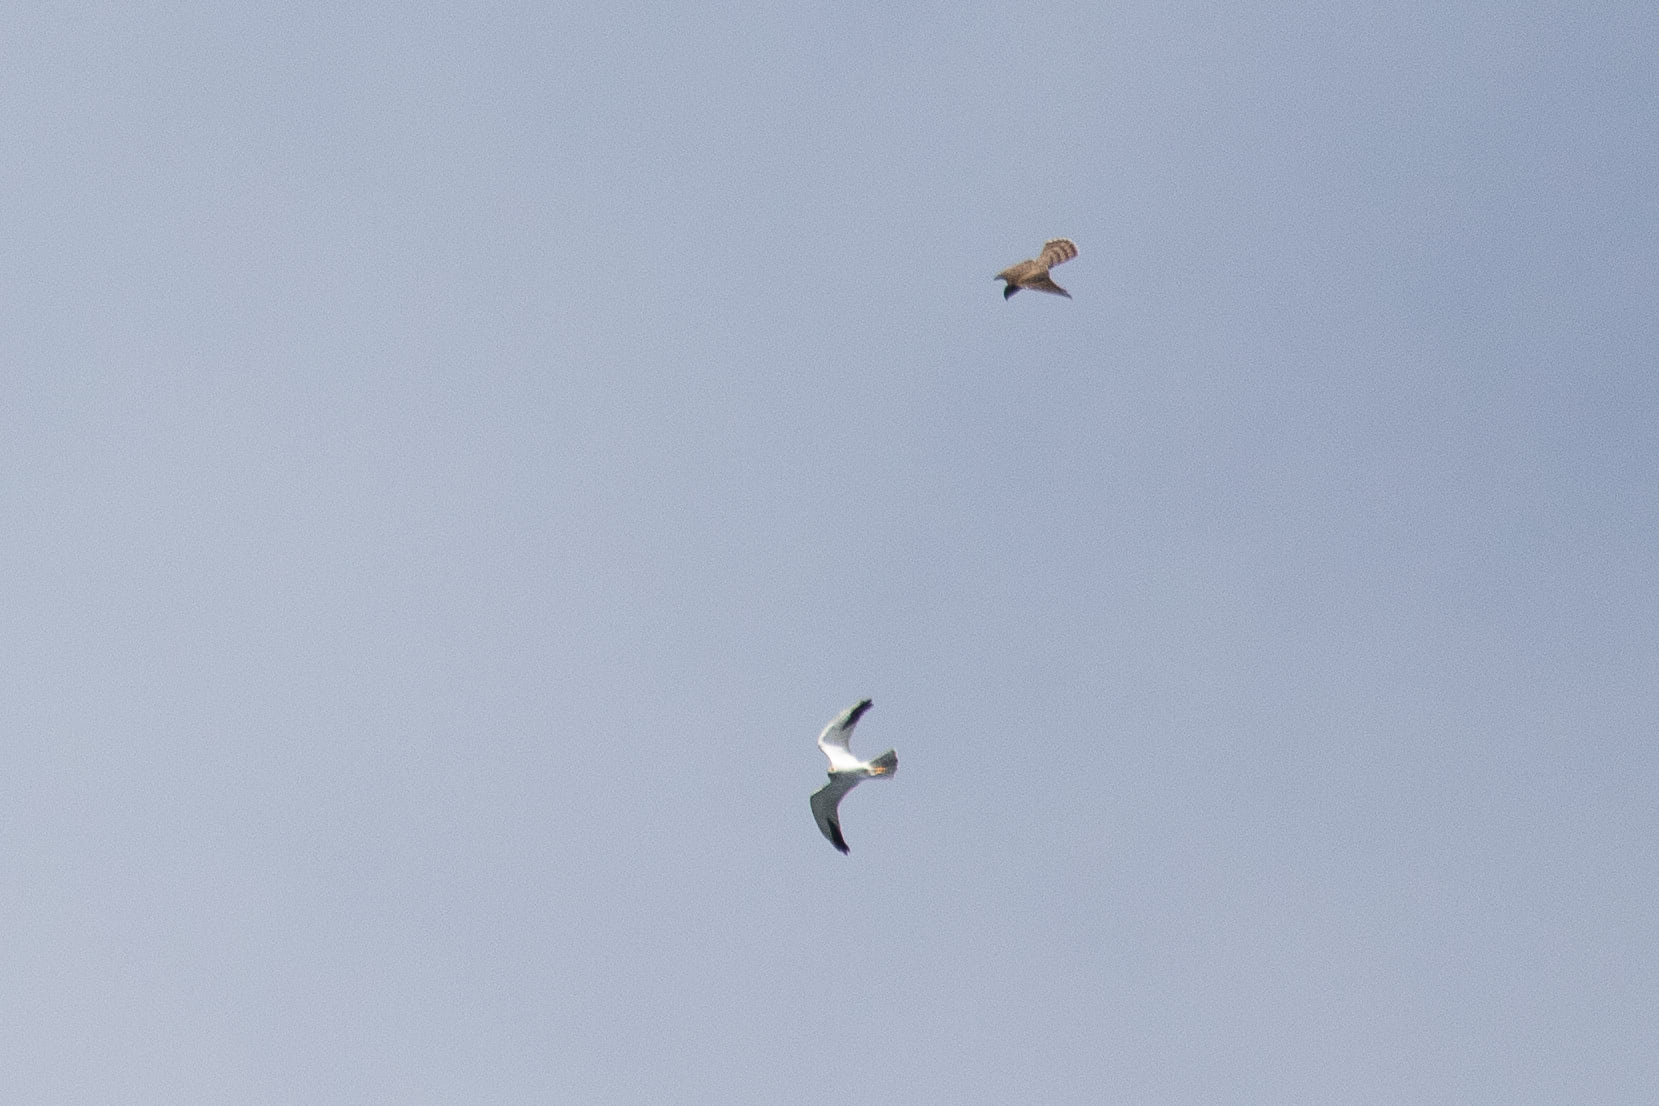 September 15th.  Some Accipiter chasing an adult male Pallid Harrier above our heads.